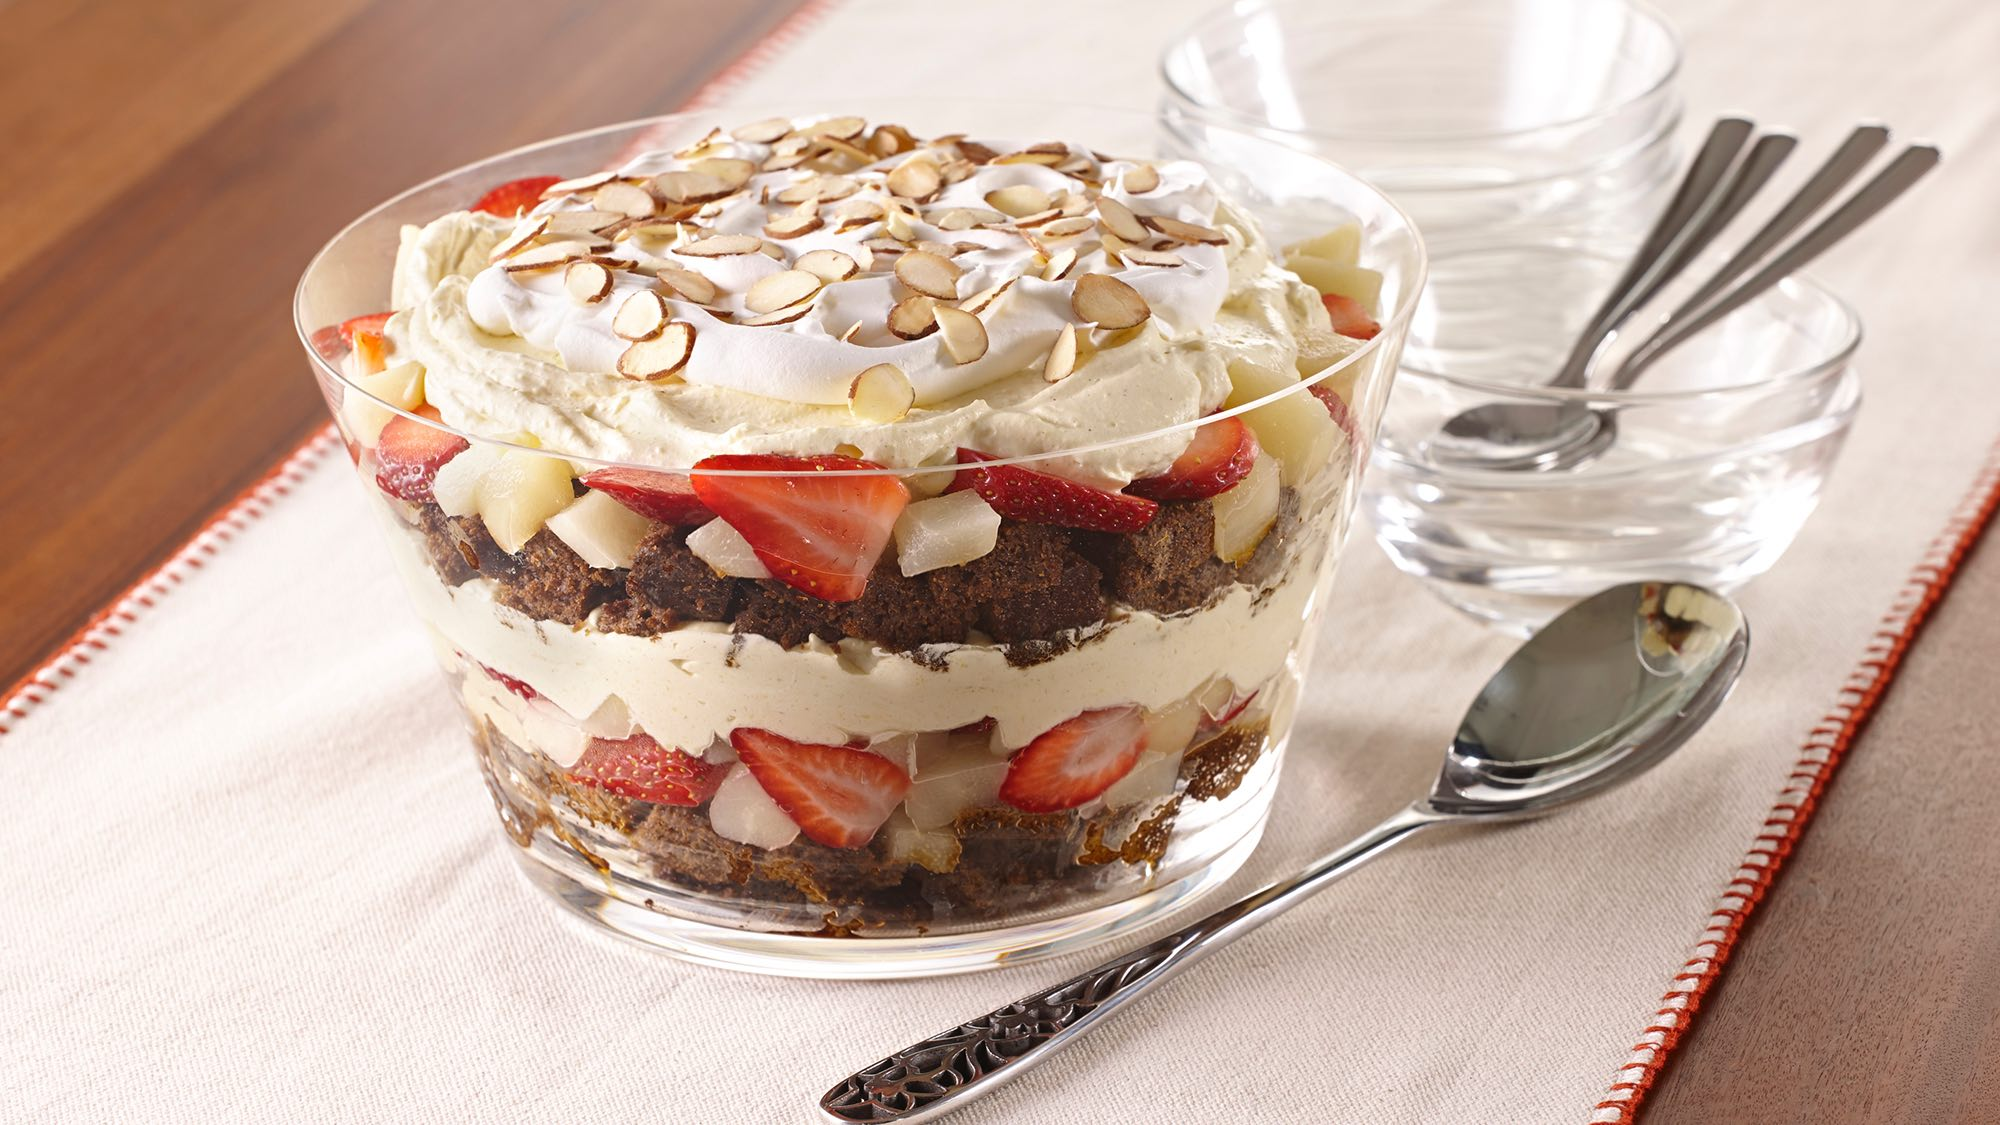 McCormick Gingerbread Trifle